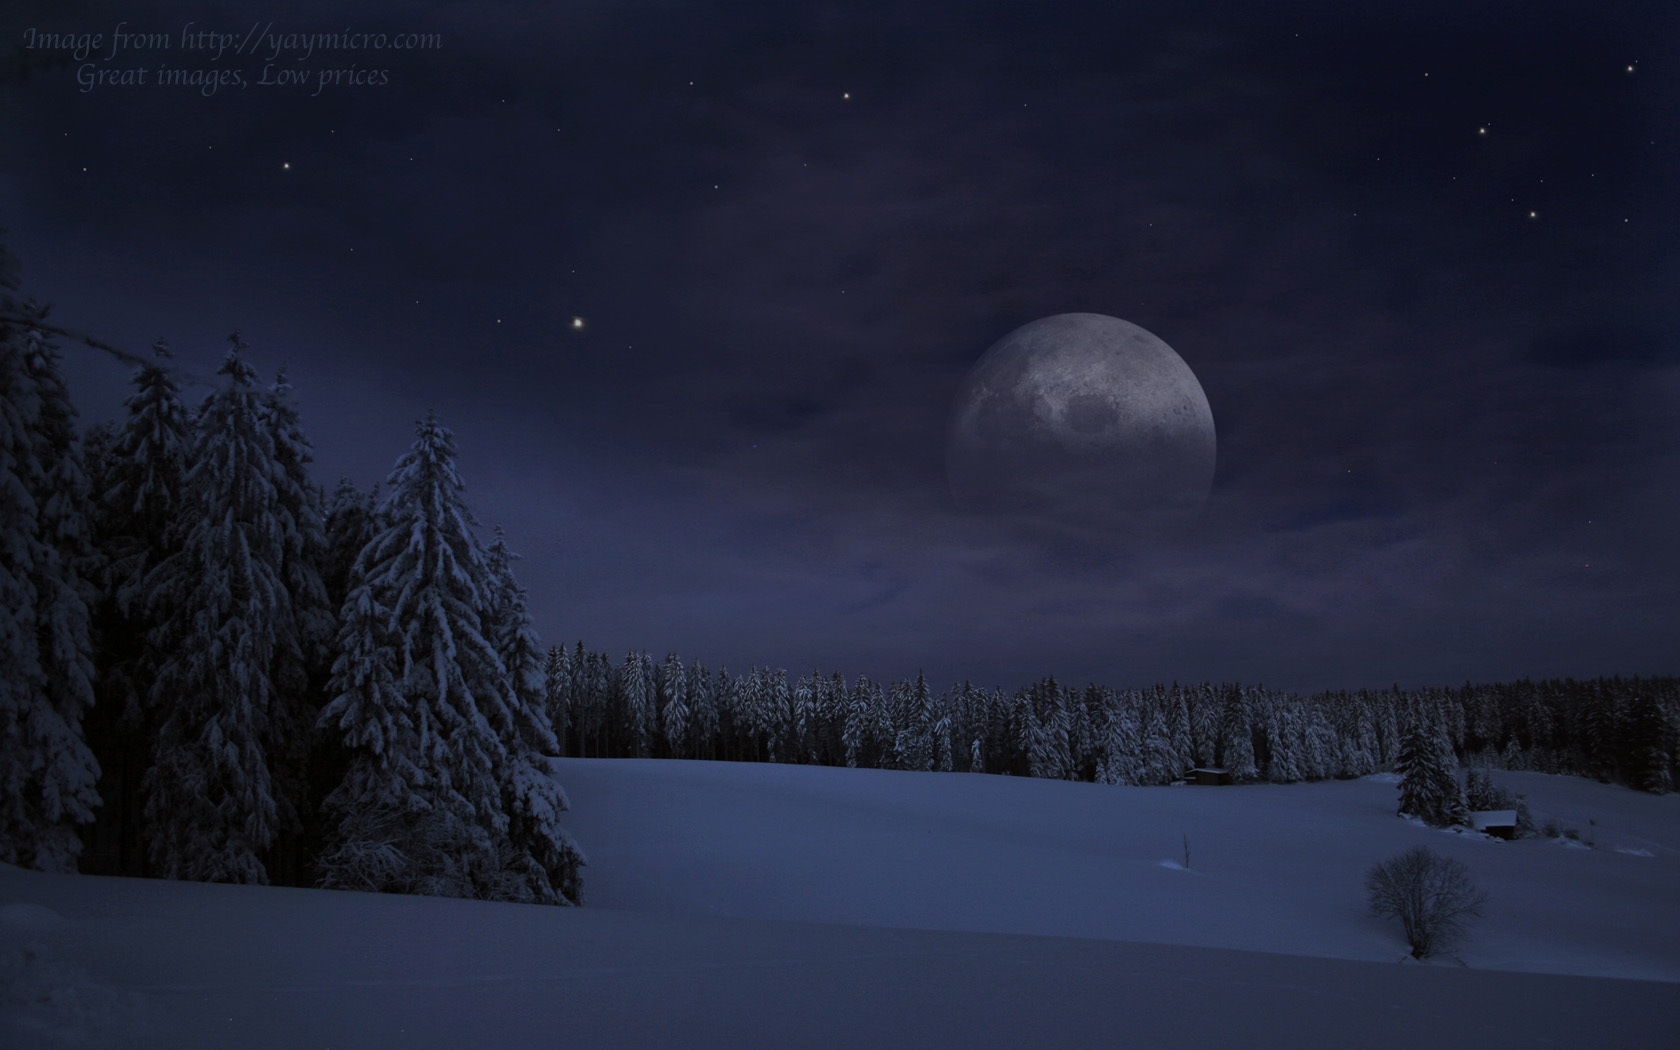 Winter forest at night   Snowflake Pack Photo 17564495 1680x1050